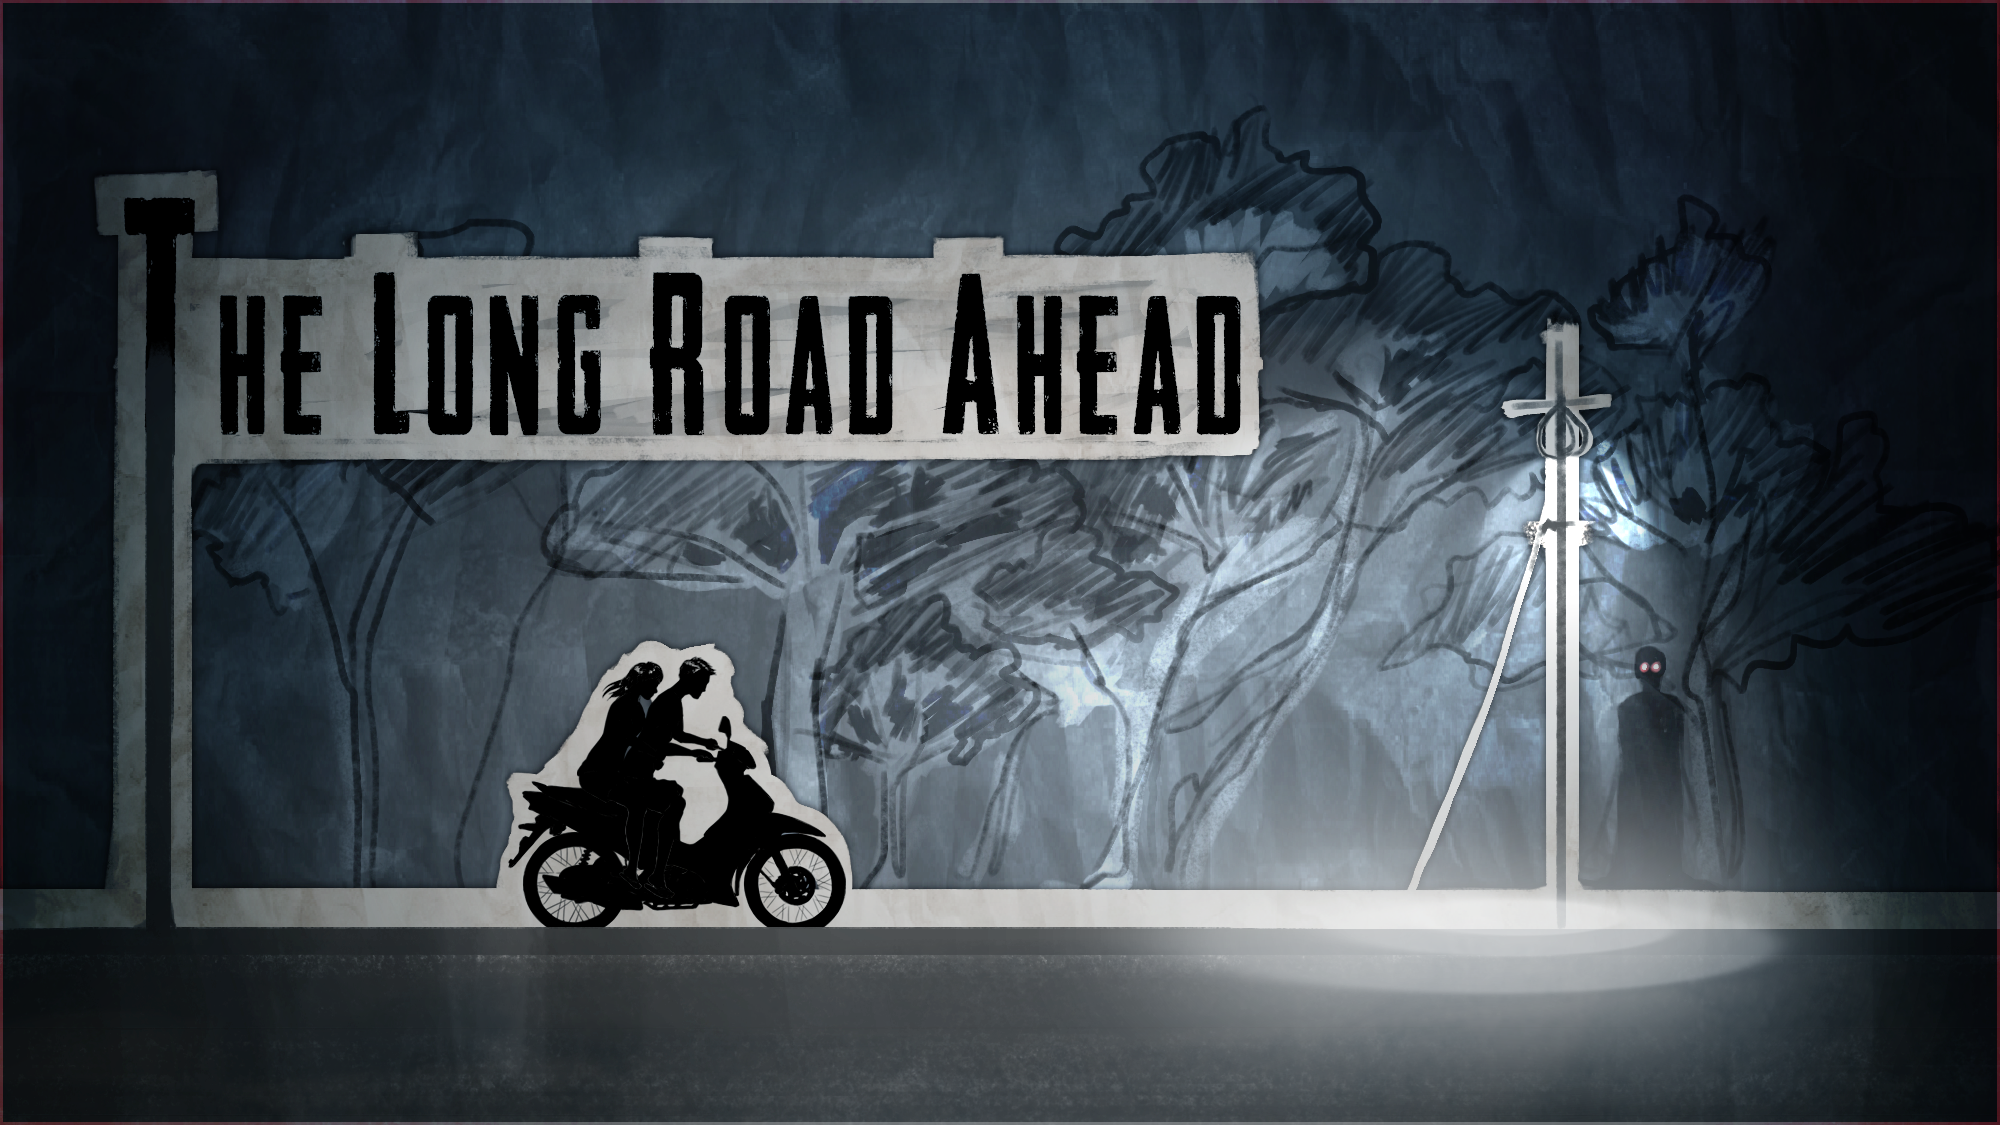 Short Creepy Tales The Long Road Ahead By Cellar Vault Games